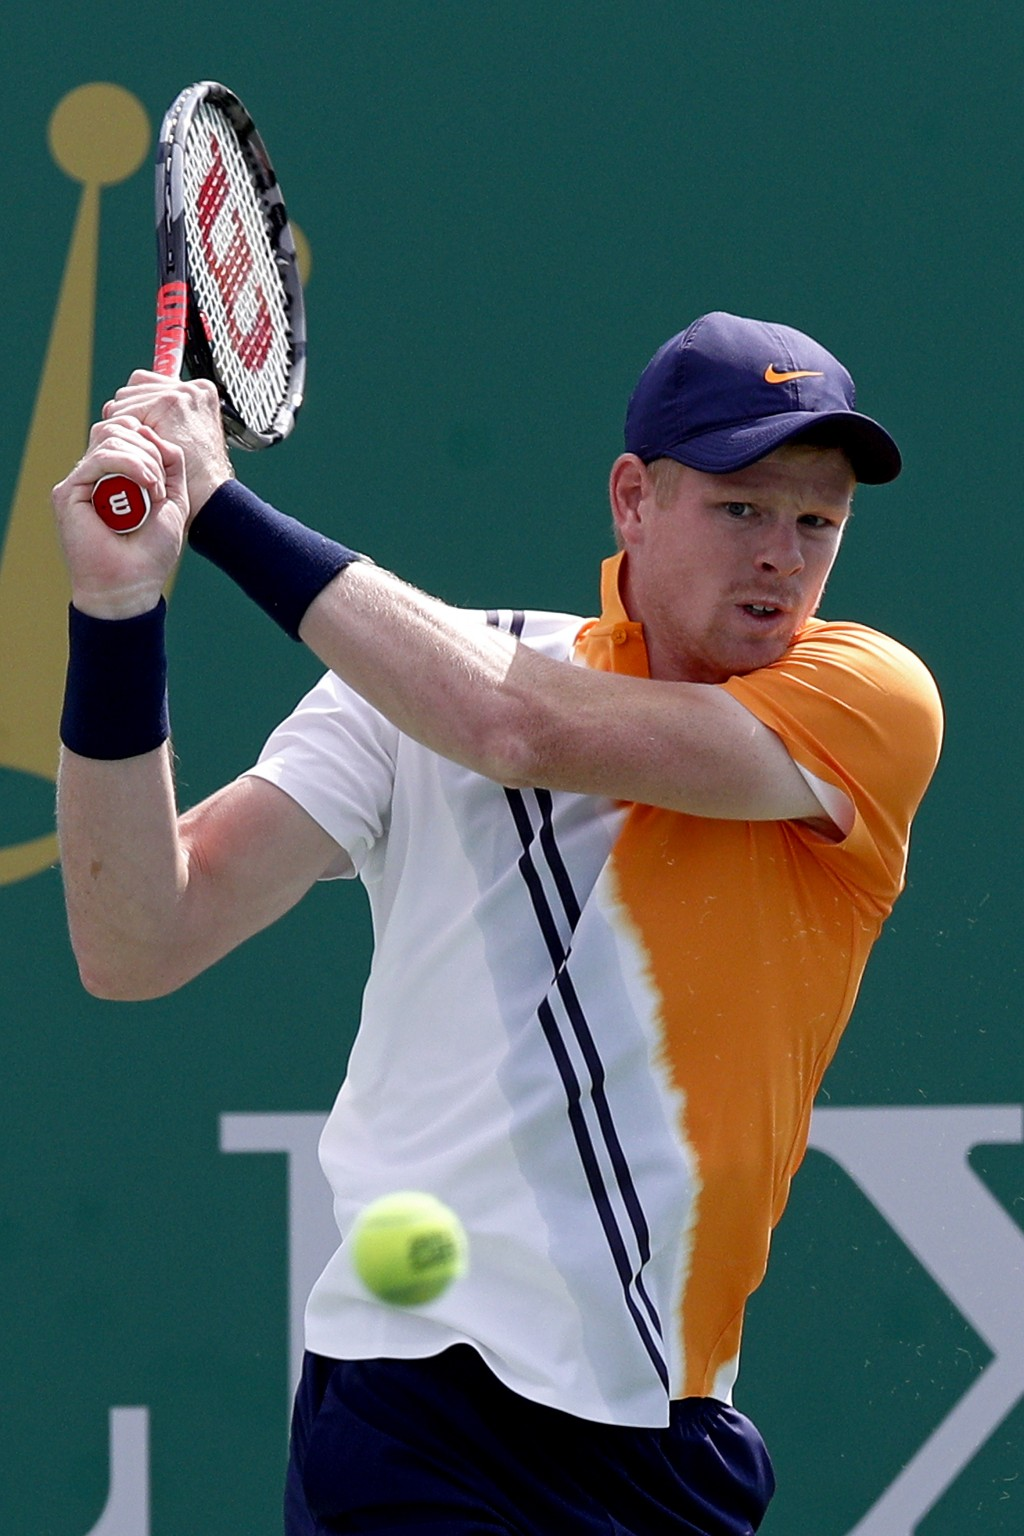 Kyle Edmund of Britain hits a return shot to Nicolas Jarry of Chile during their men's singles match of the Shanghai Masters tennis tournament at Qizh